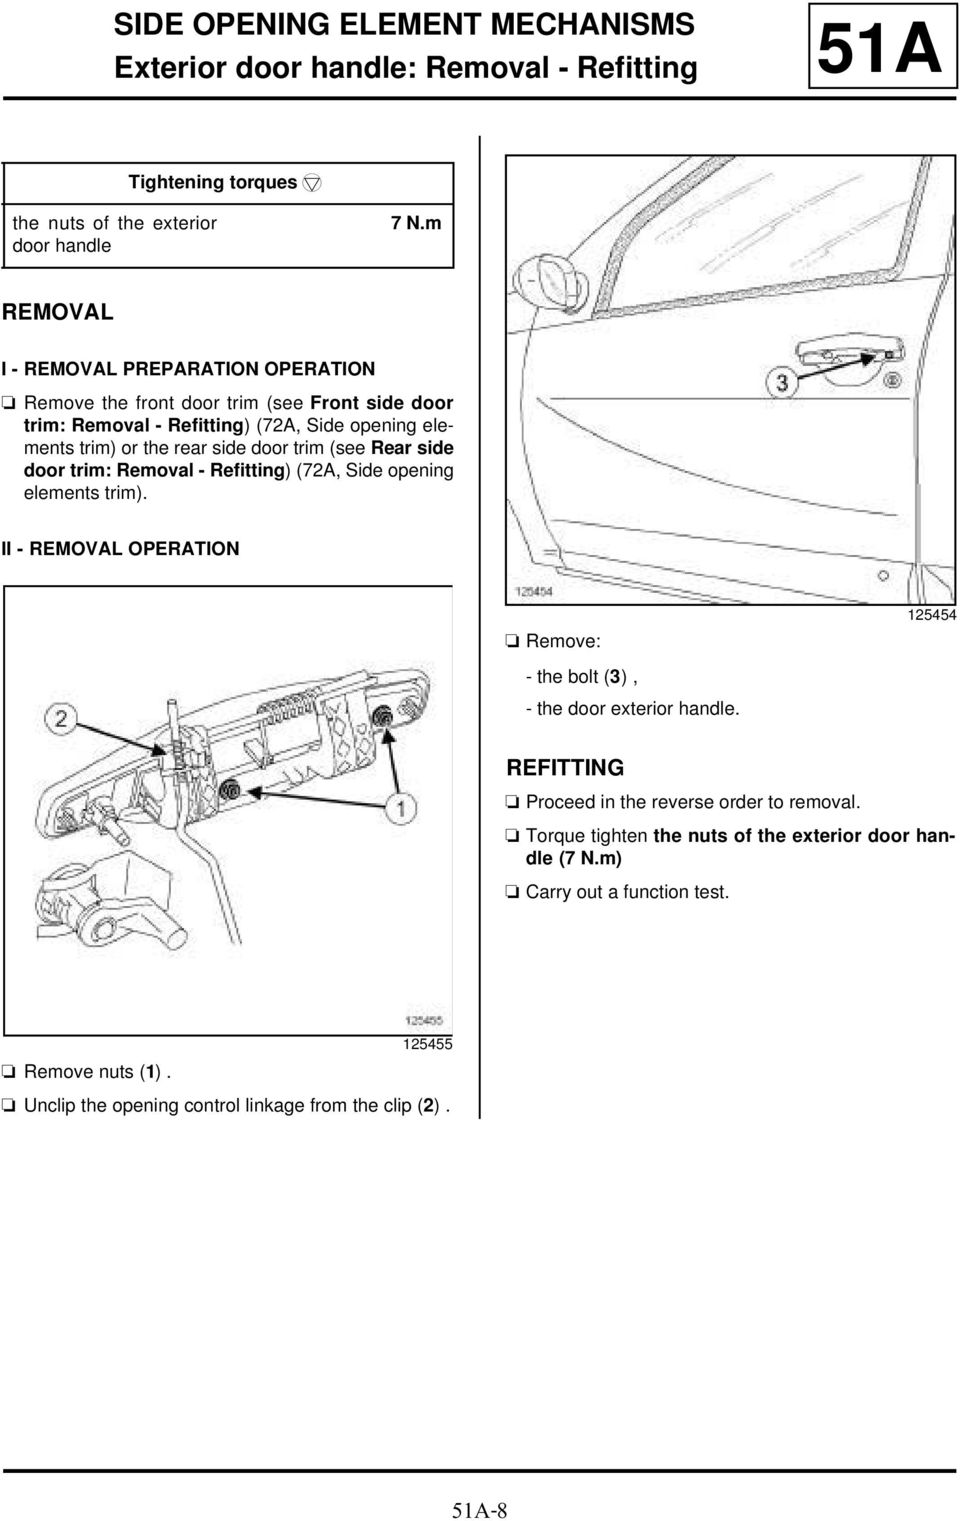 Rear side door trim: Removal - Refitting) (72A, Side opening elements trim). II - OPERATION a Remove: 125454 - the bolt (3), - the door exterior handle.